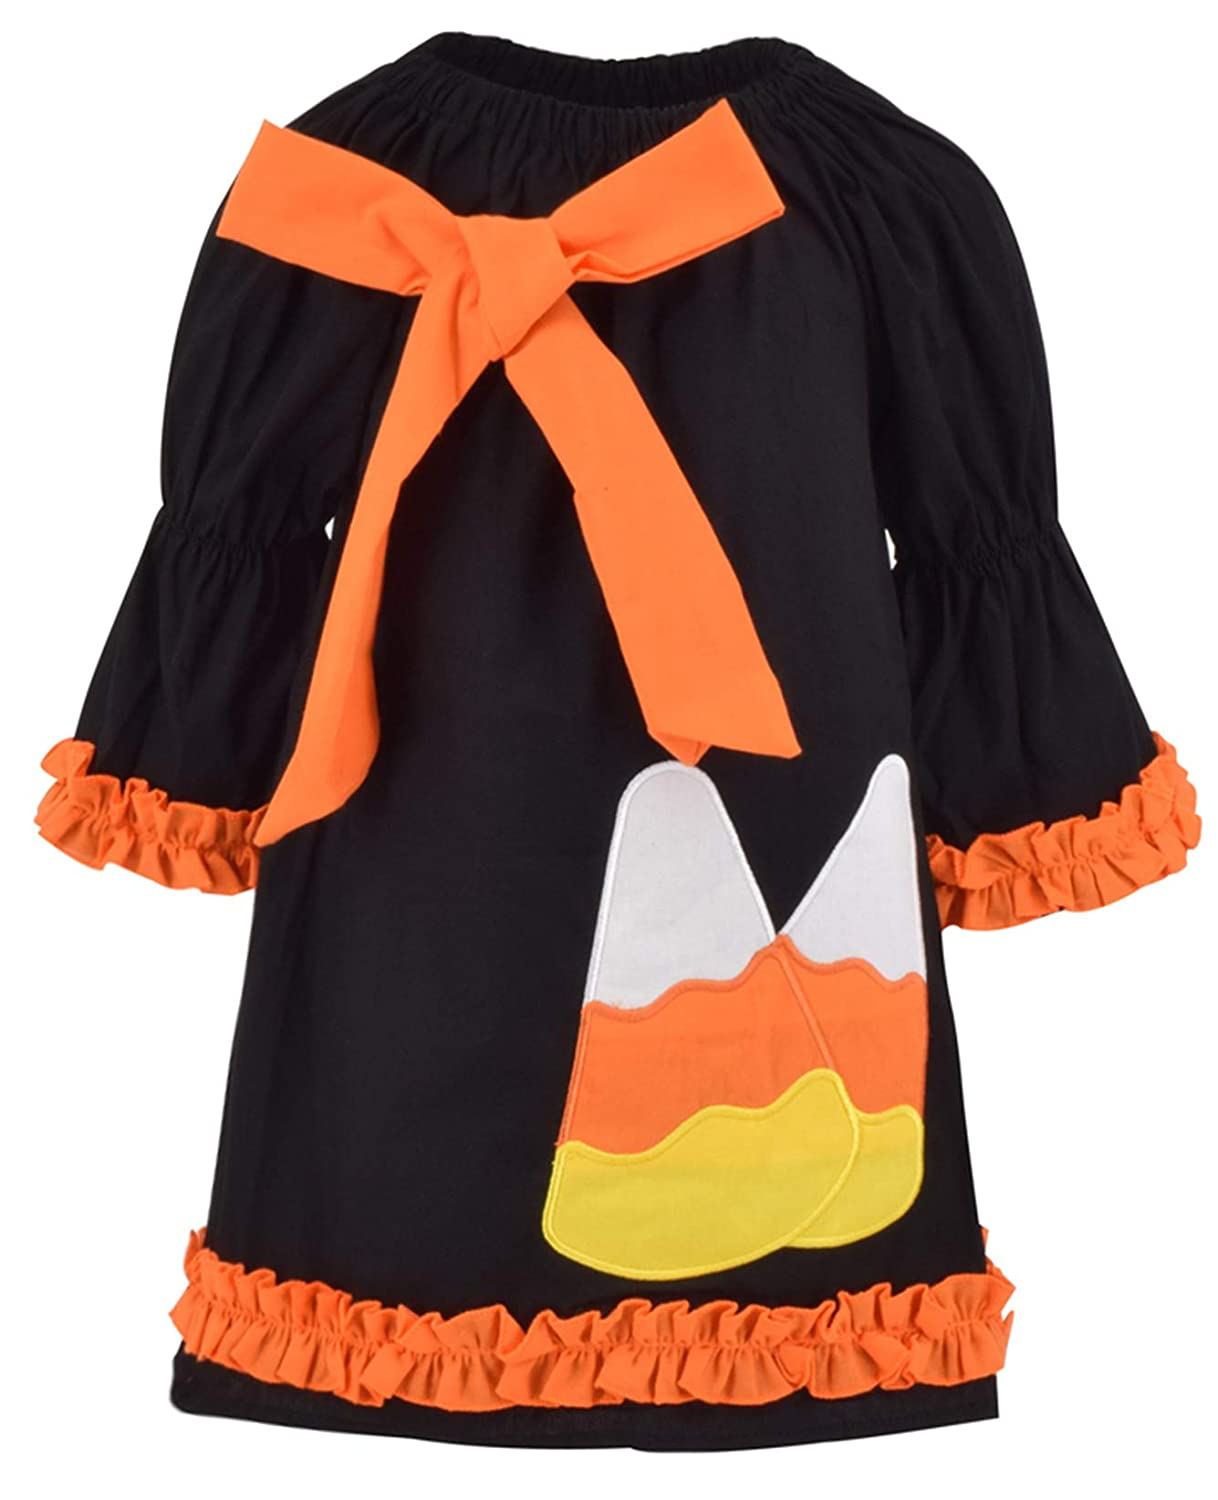 2359dac5d8 The adorable Halloween theme and the candy design will make this your little  girl s favorite Halloween outfit! FIT AND FEEL  100% cotton is cool and ...